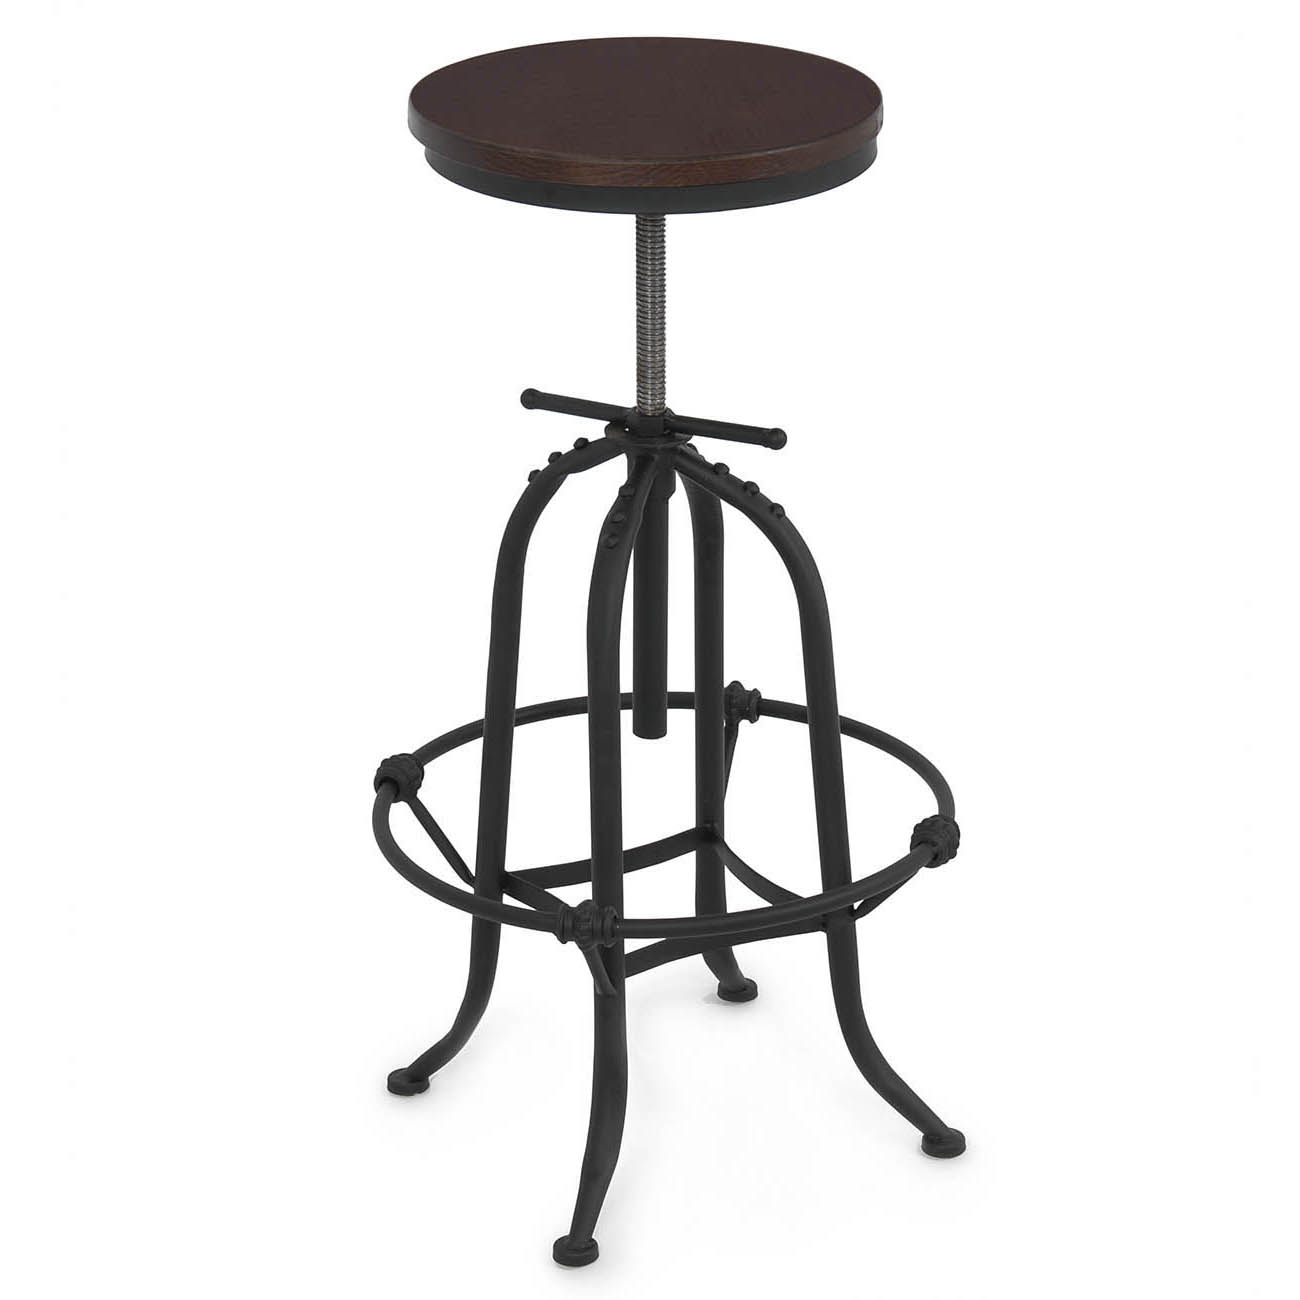 Countertop Height For Bar Stools : Rustic Bar Stool Home Adjustable Seat Height Countertop Vintage Swivel ...